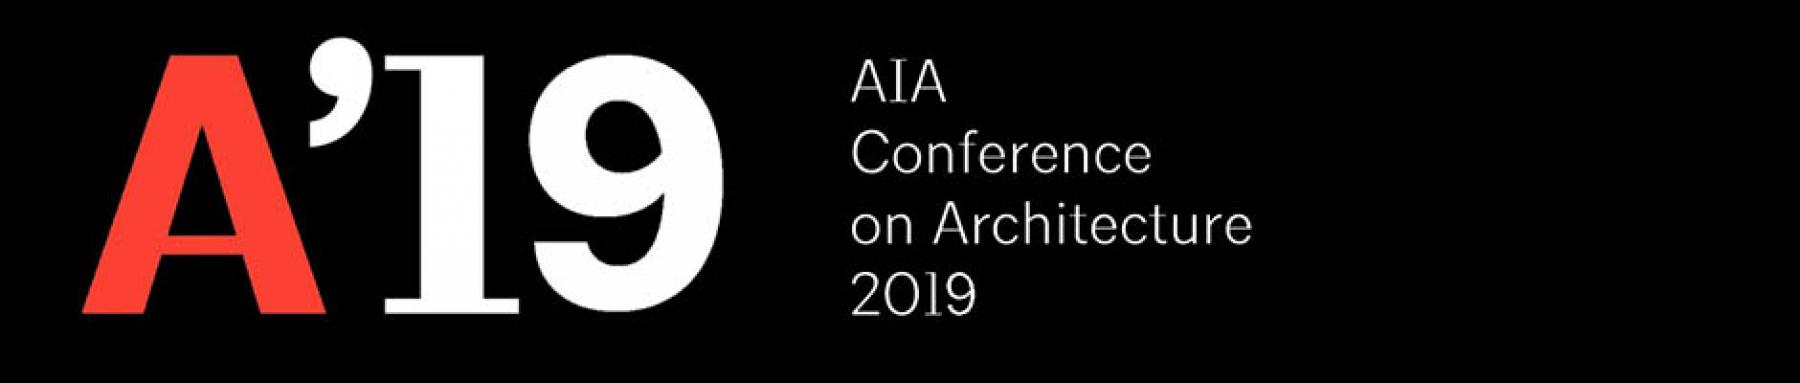 AIA Conference 2019